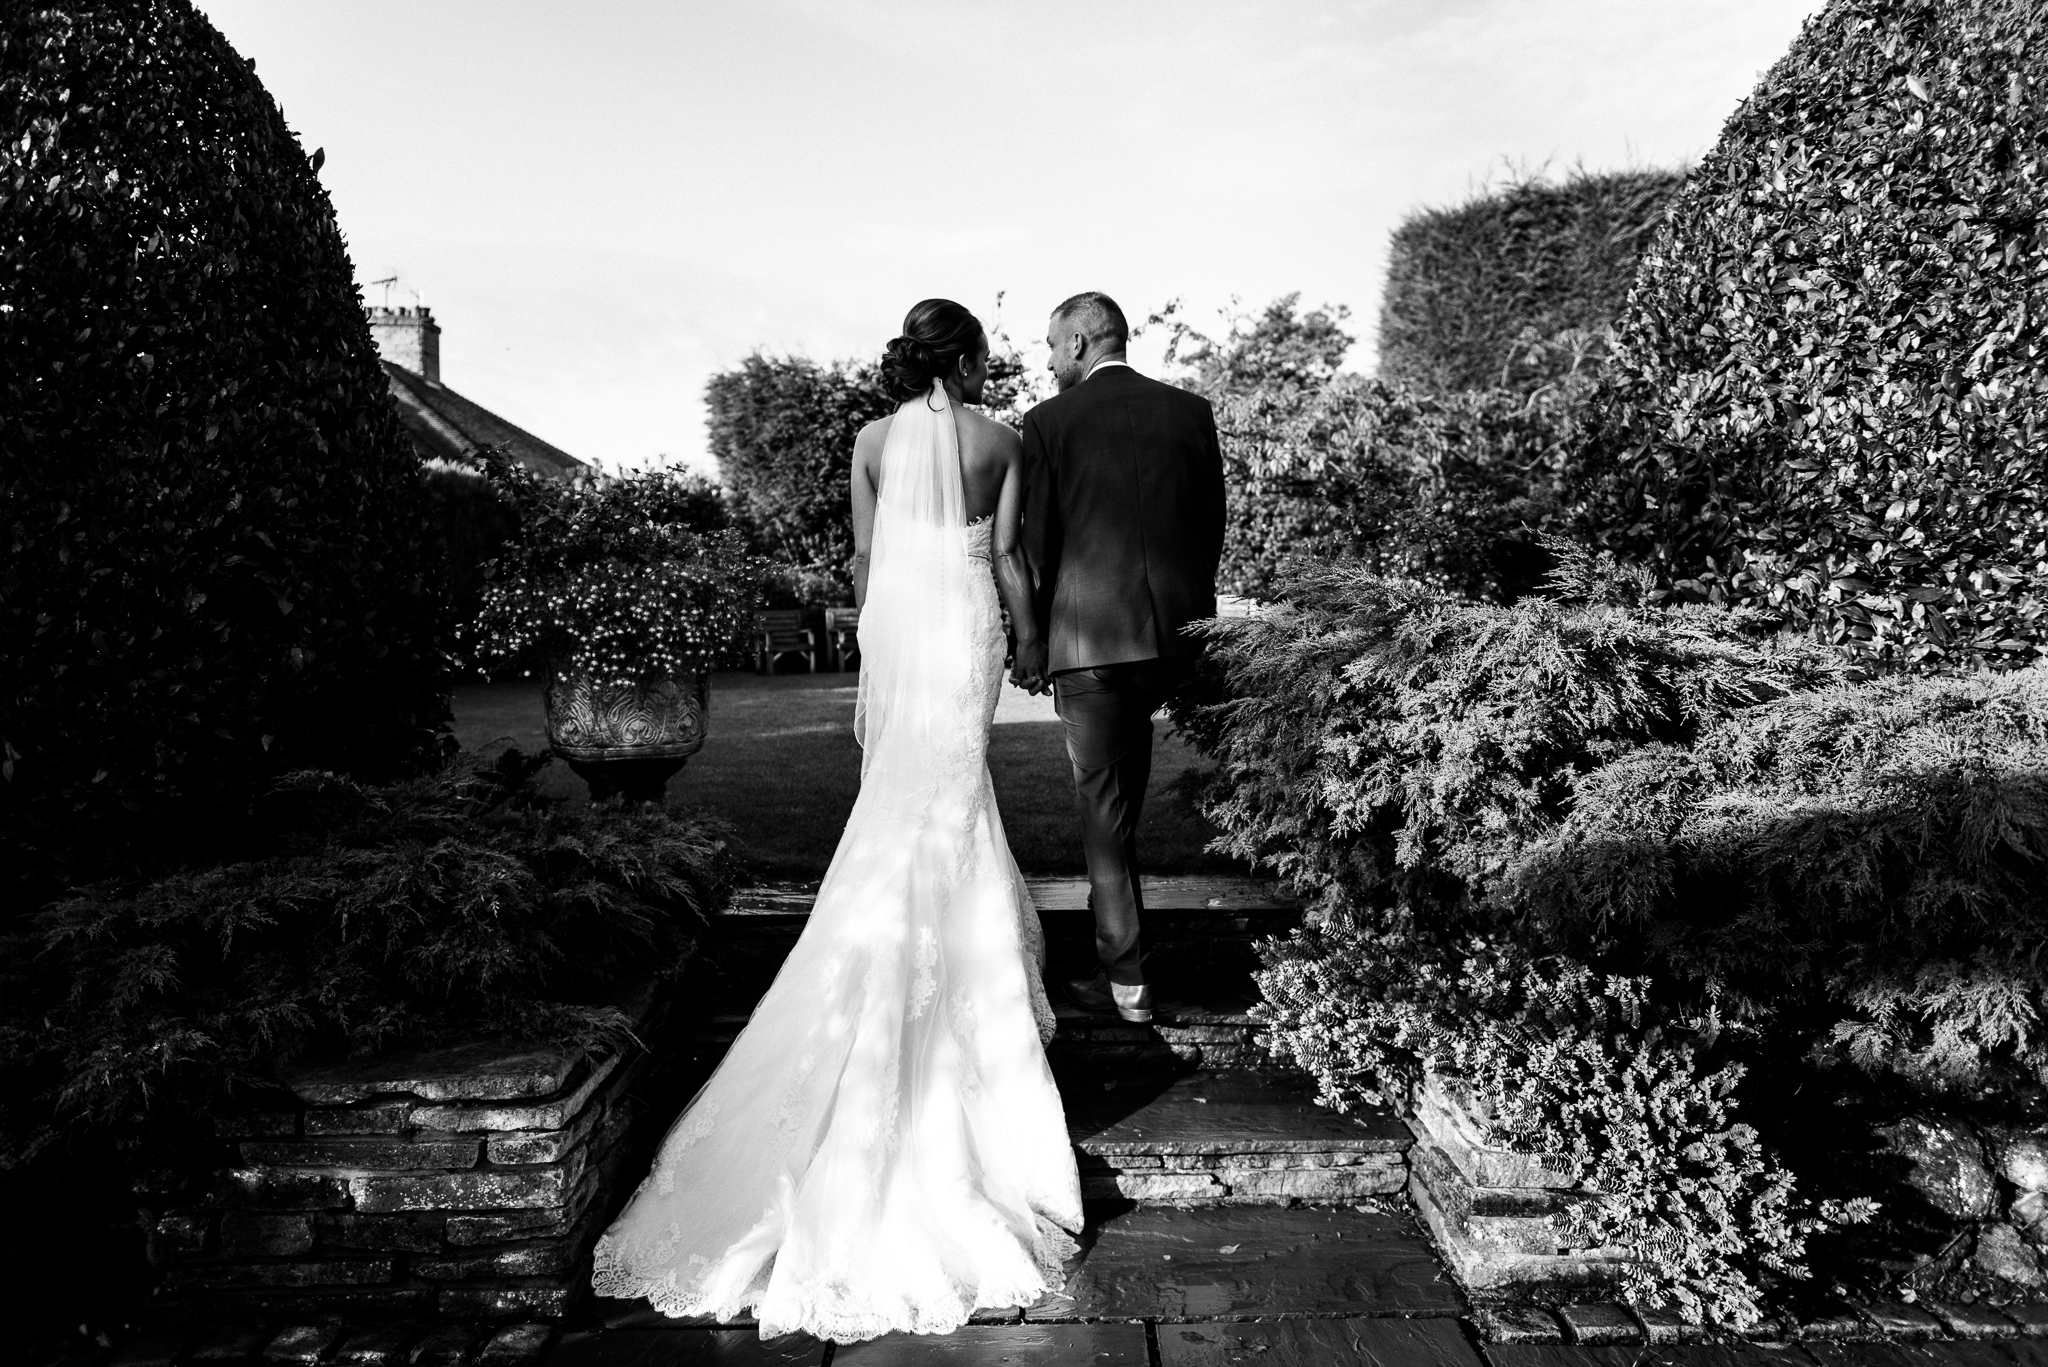 Staffordshire Moorlands Documentary Wedding Photography at The Three Horseshoes, Blackshaw Moor - Jenny Harper-38.jpg